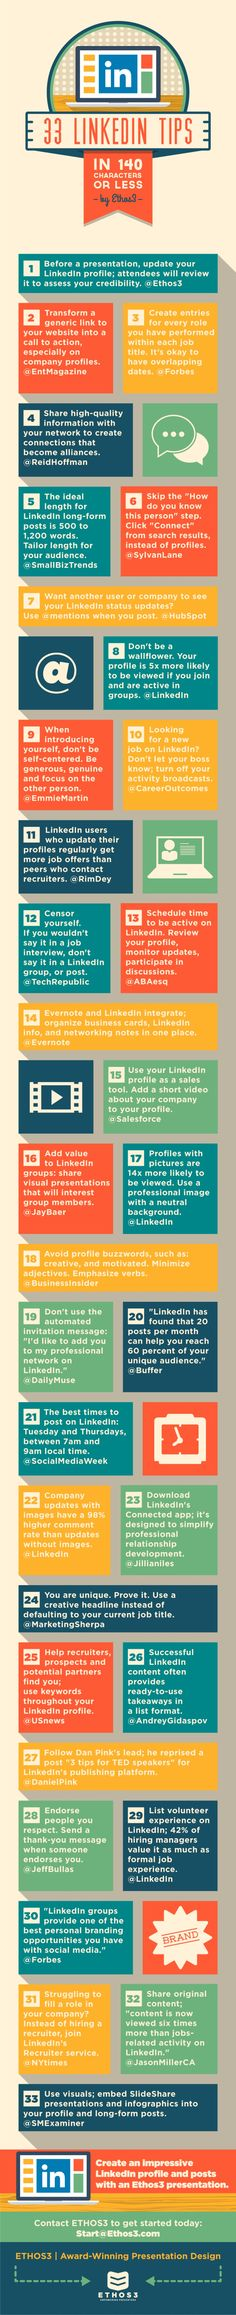 33 Tweetable LinkedIn Tips [Infographic], via @HubSpot